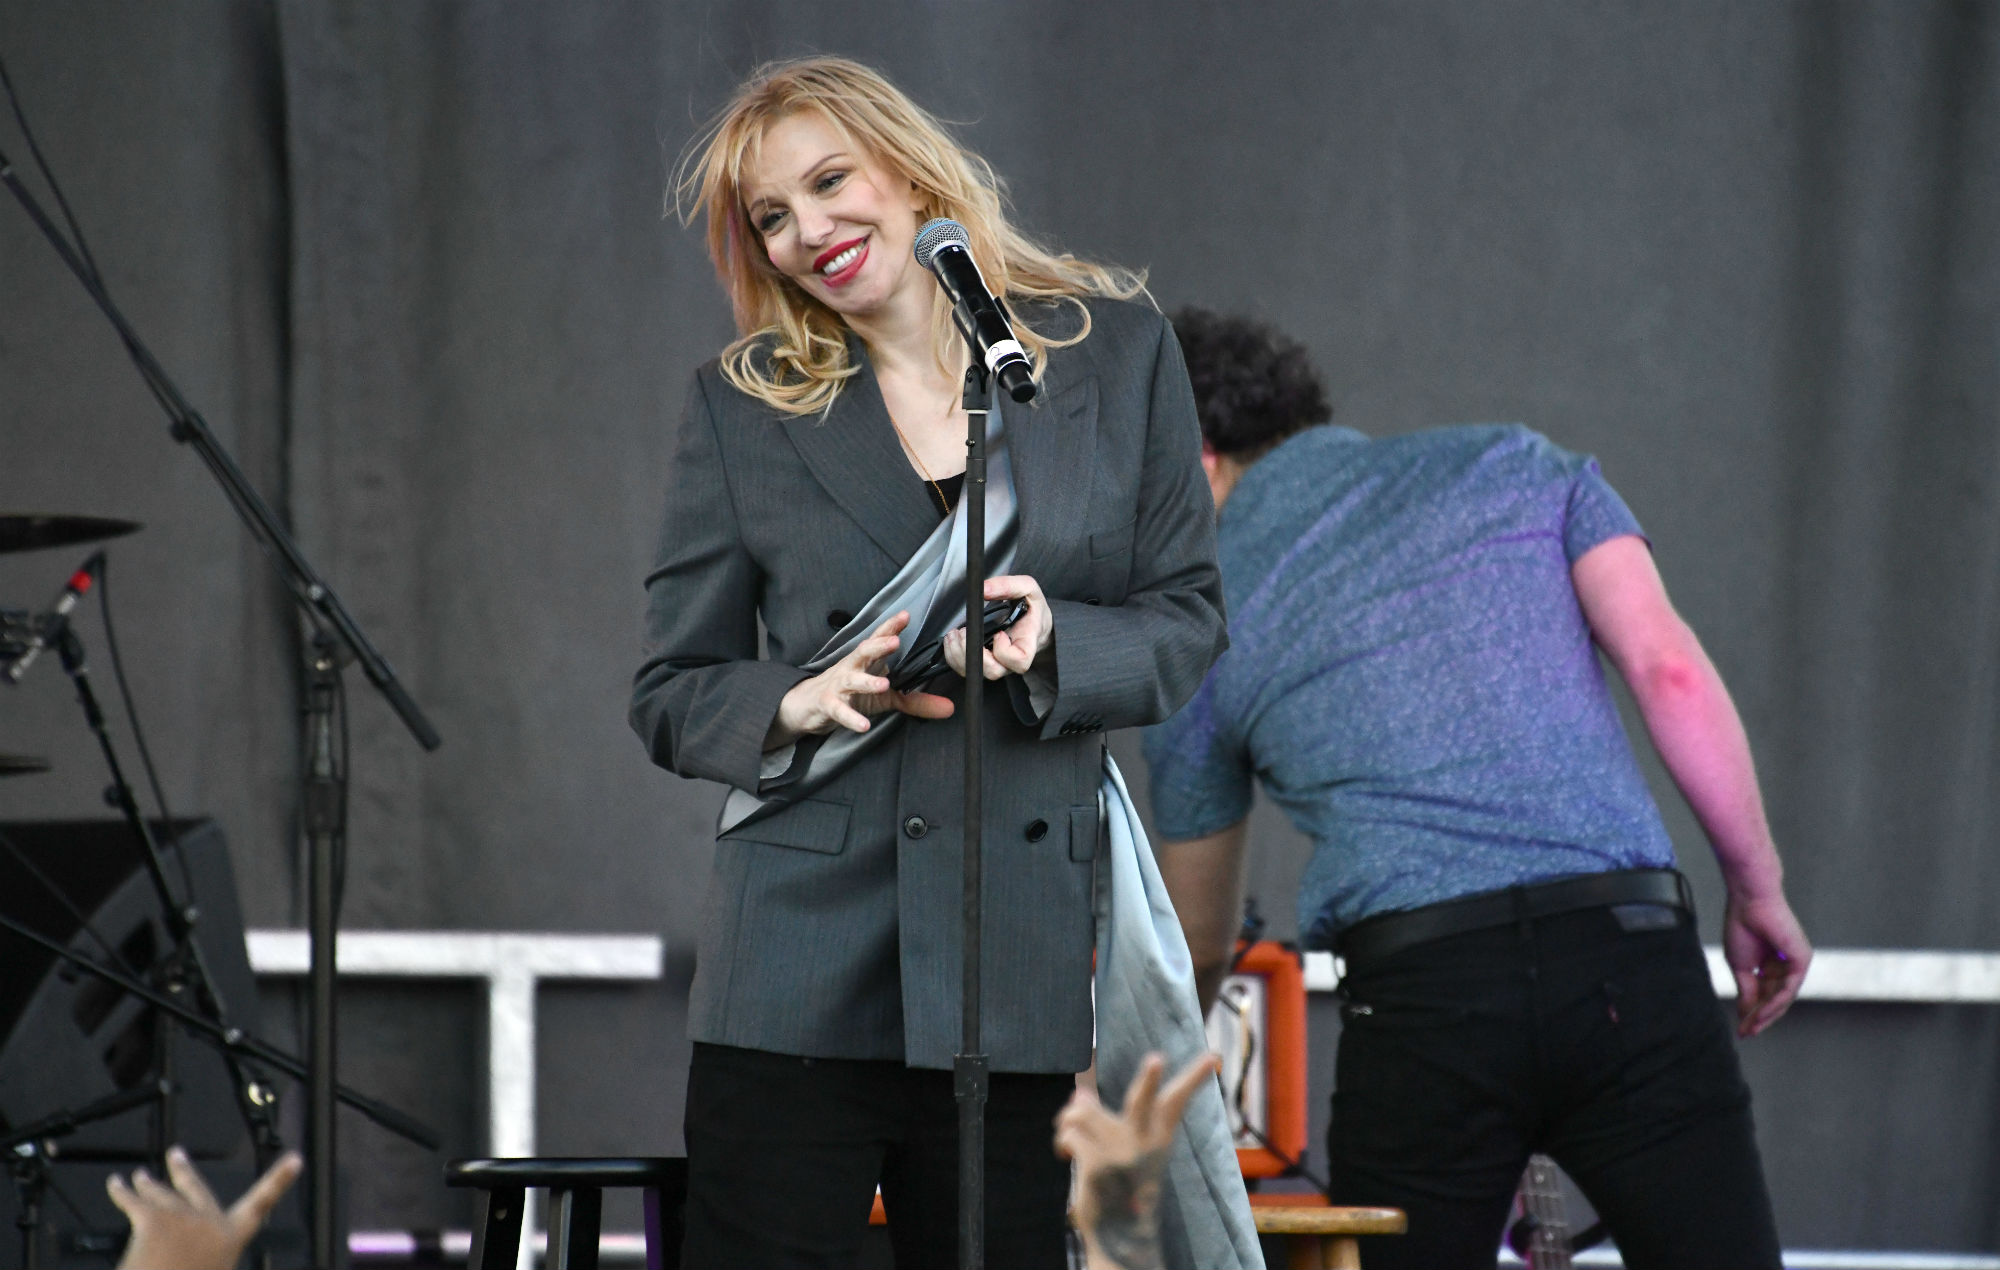 Courtney Love performing at YOLA Día festival, 2019